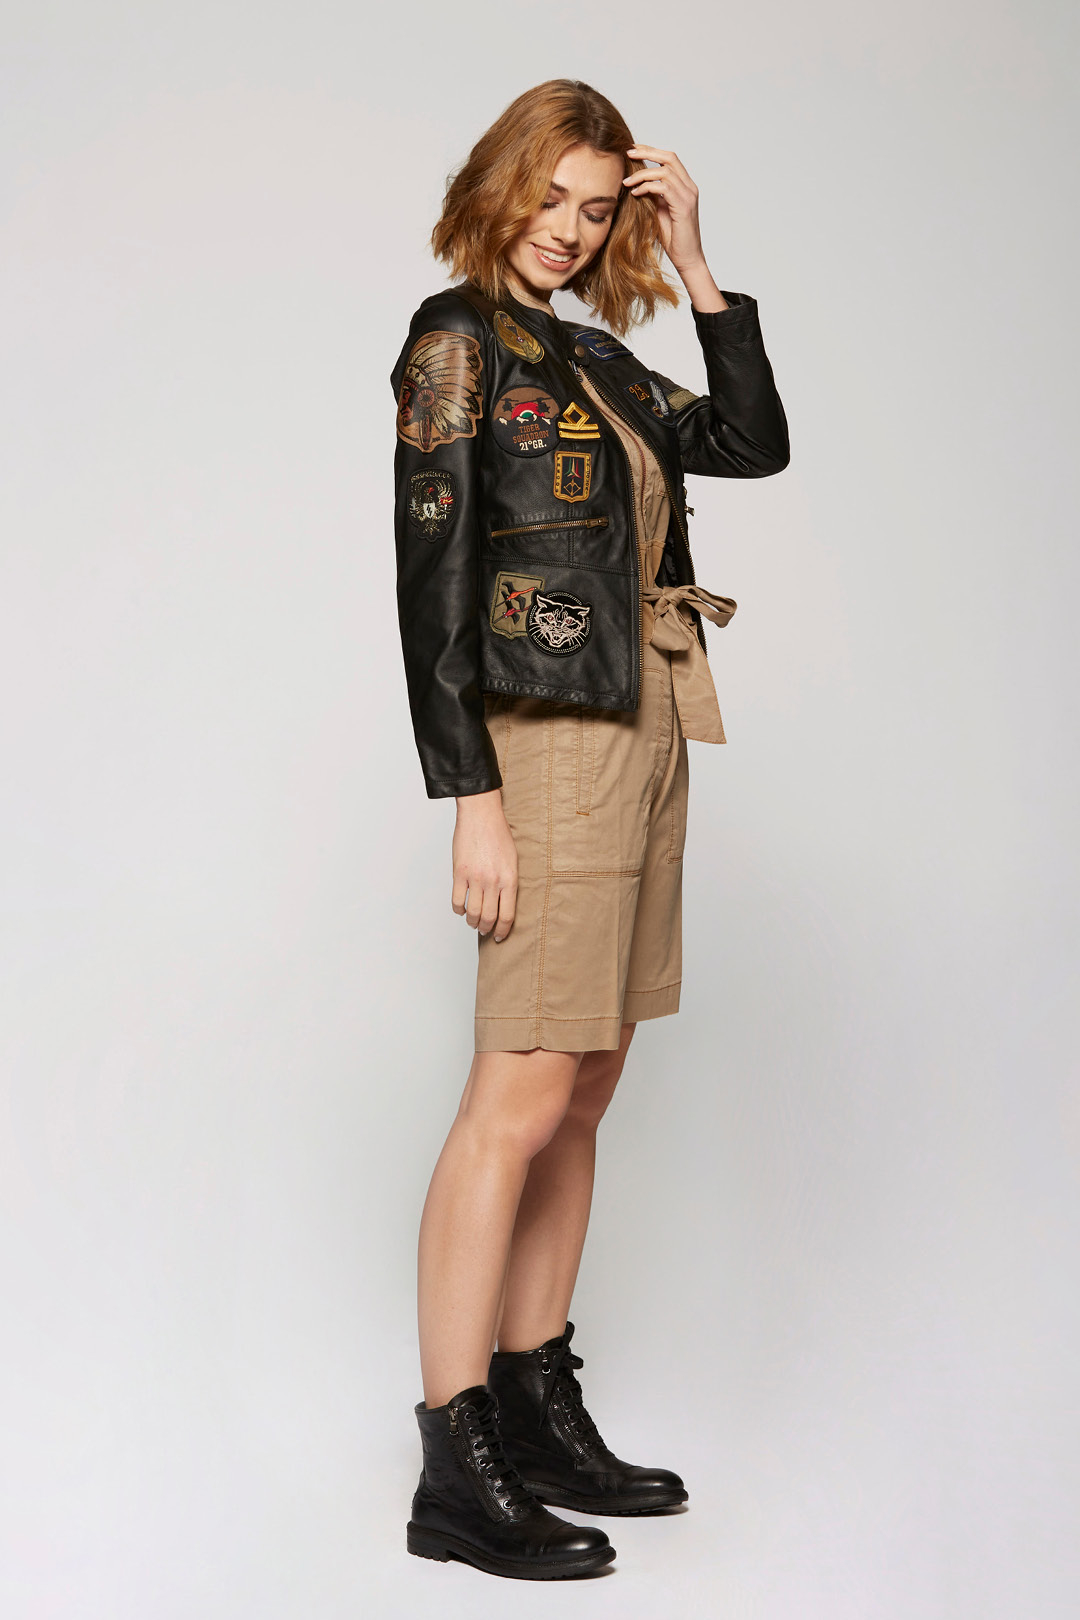 Multipatched Leather Jacket                     4